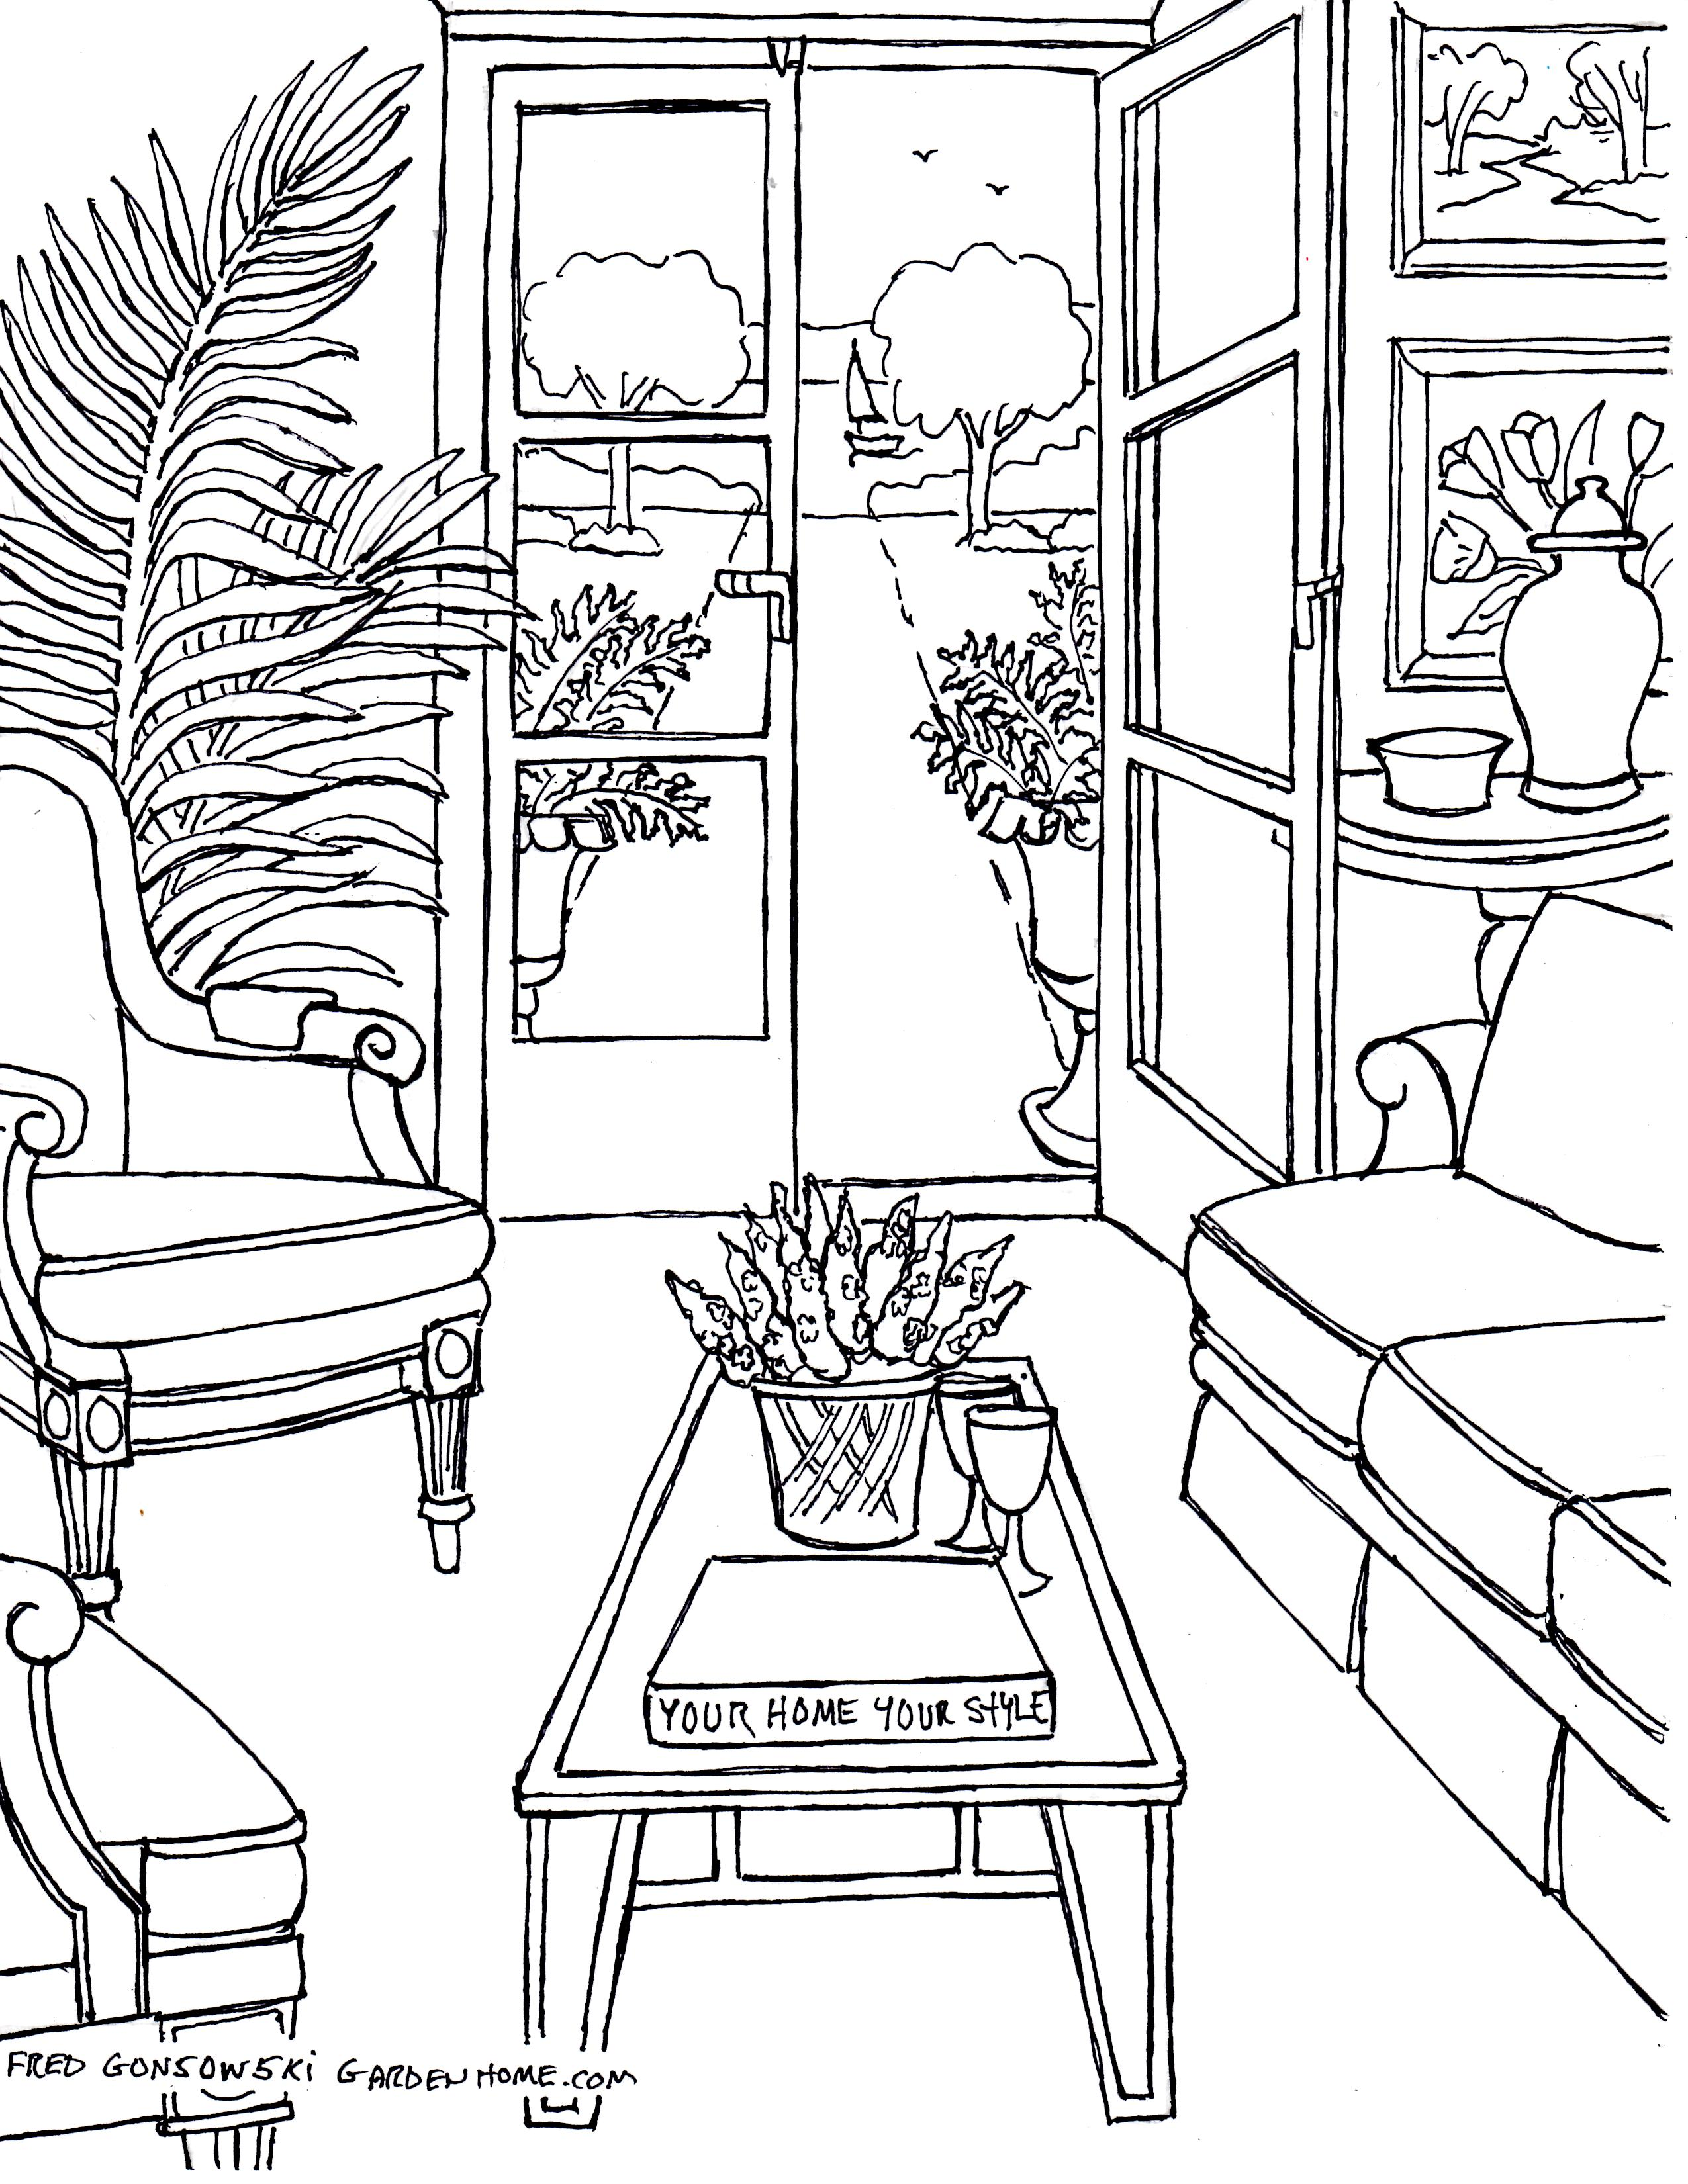 Room Design Free: Coloring Pages For Adults… Some Drawings Of Living Rooms